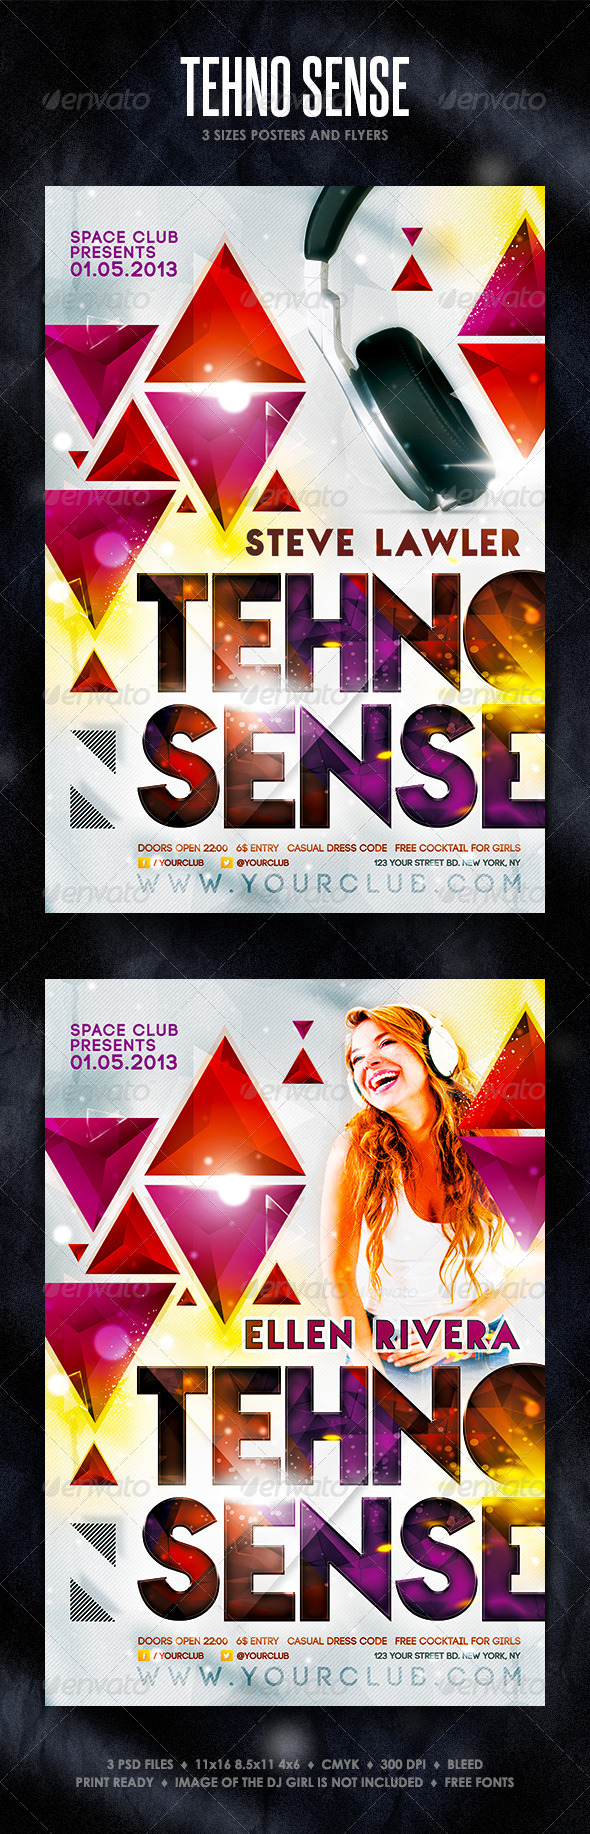 Tehno Sense Posters and Flyers - Clubs & Parties Events